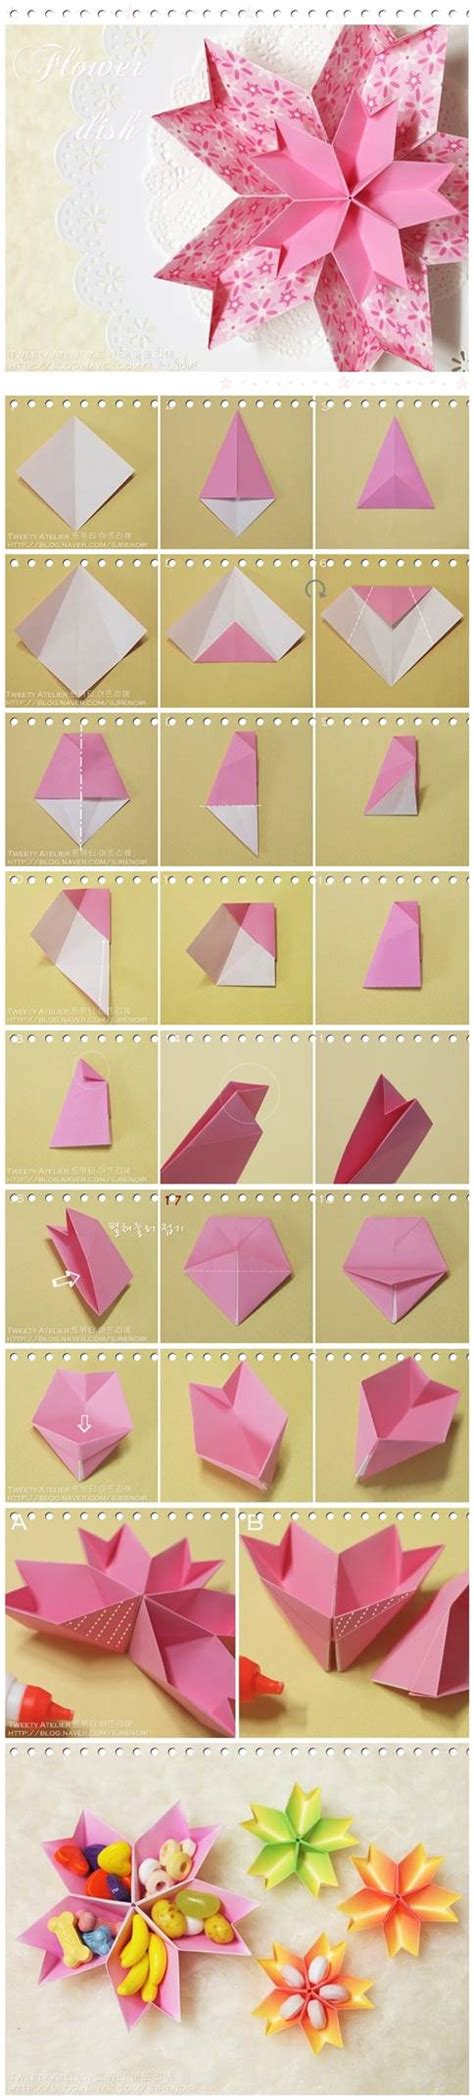 Step By Step How To Make Paper Flowers - how to make paper flower dish step by step diy tutorial